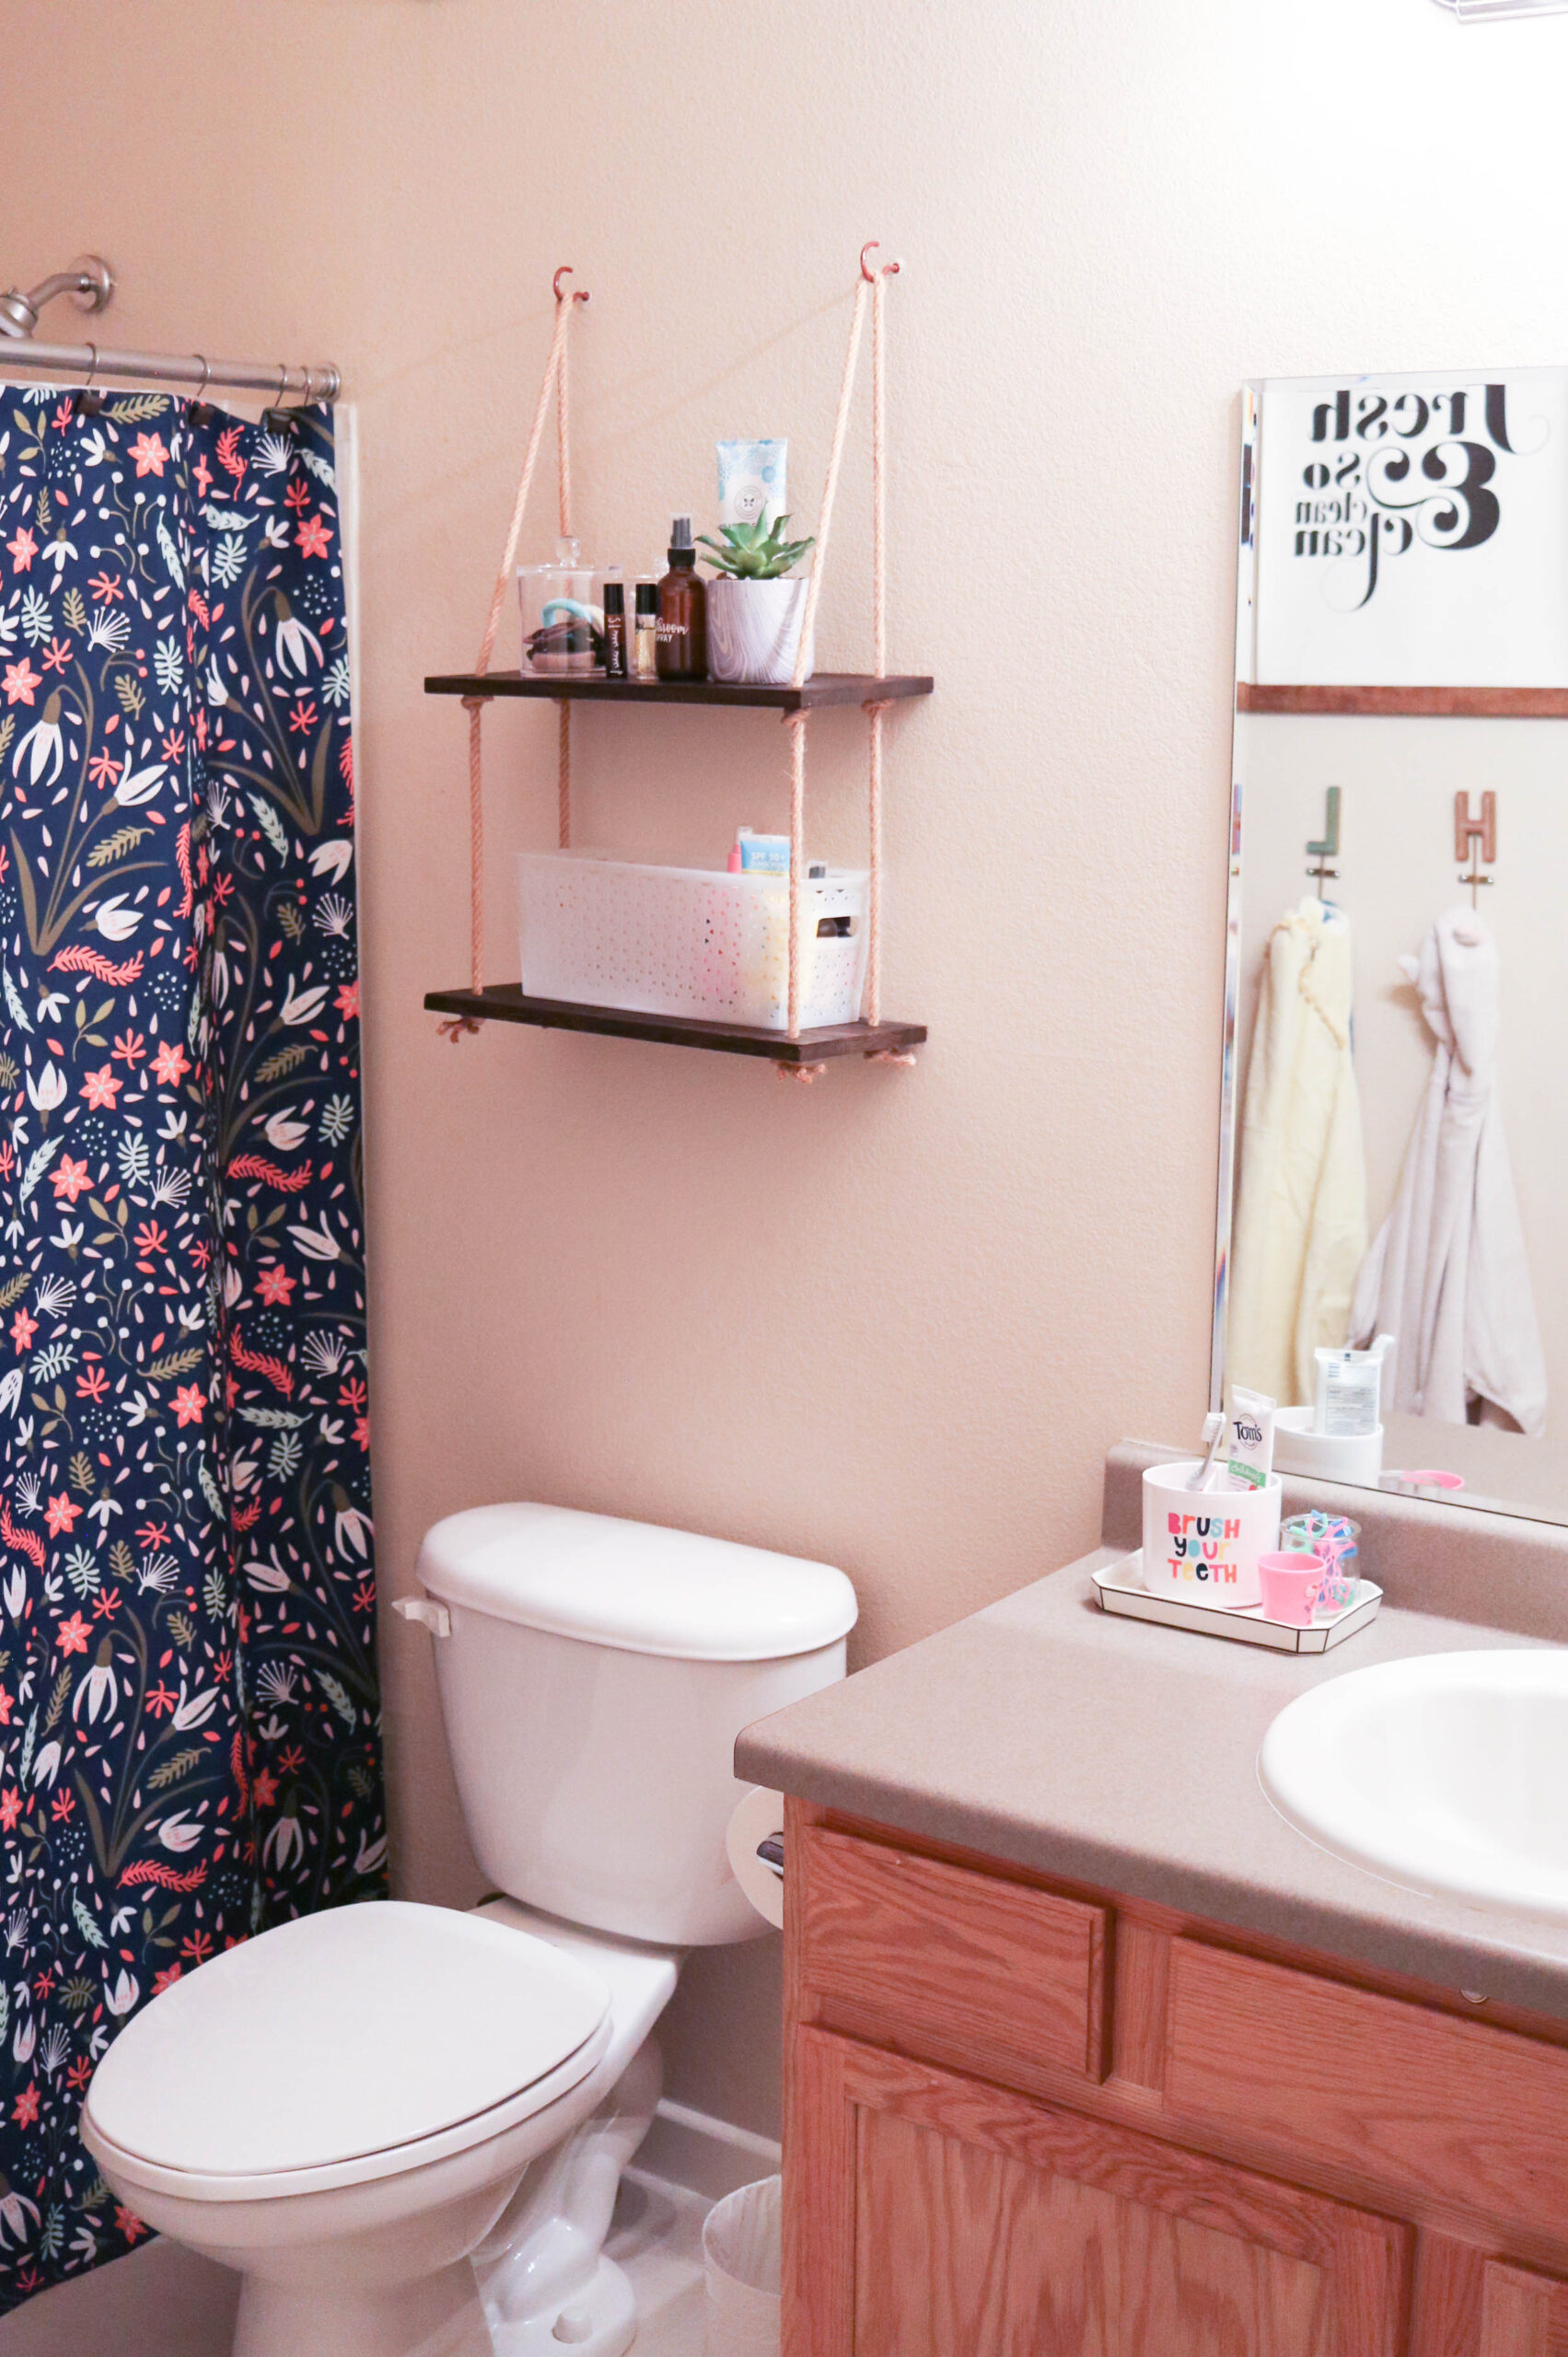 diy guest bathroom fresh before photos #diy #bathroomdecor